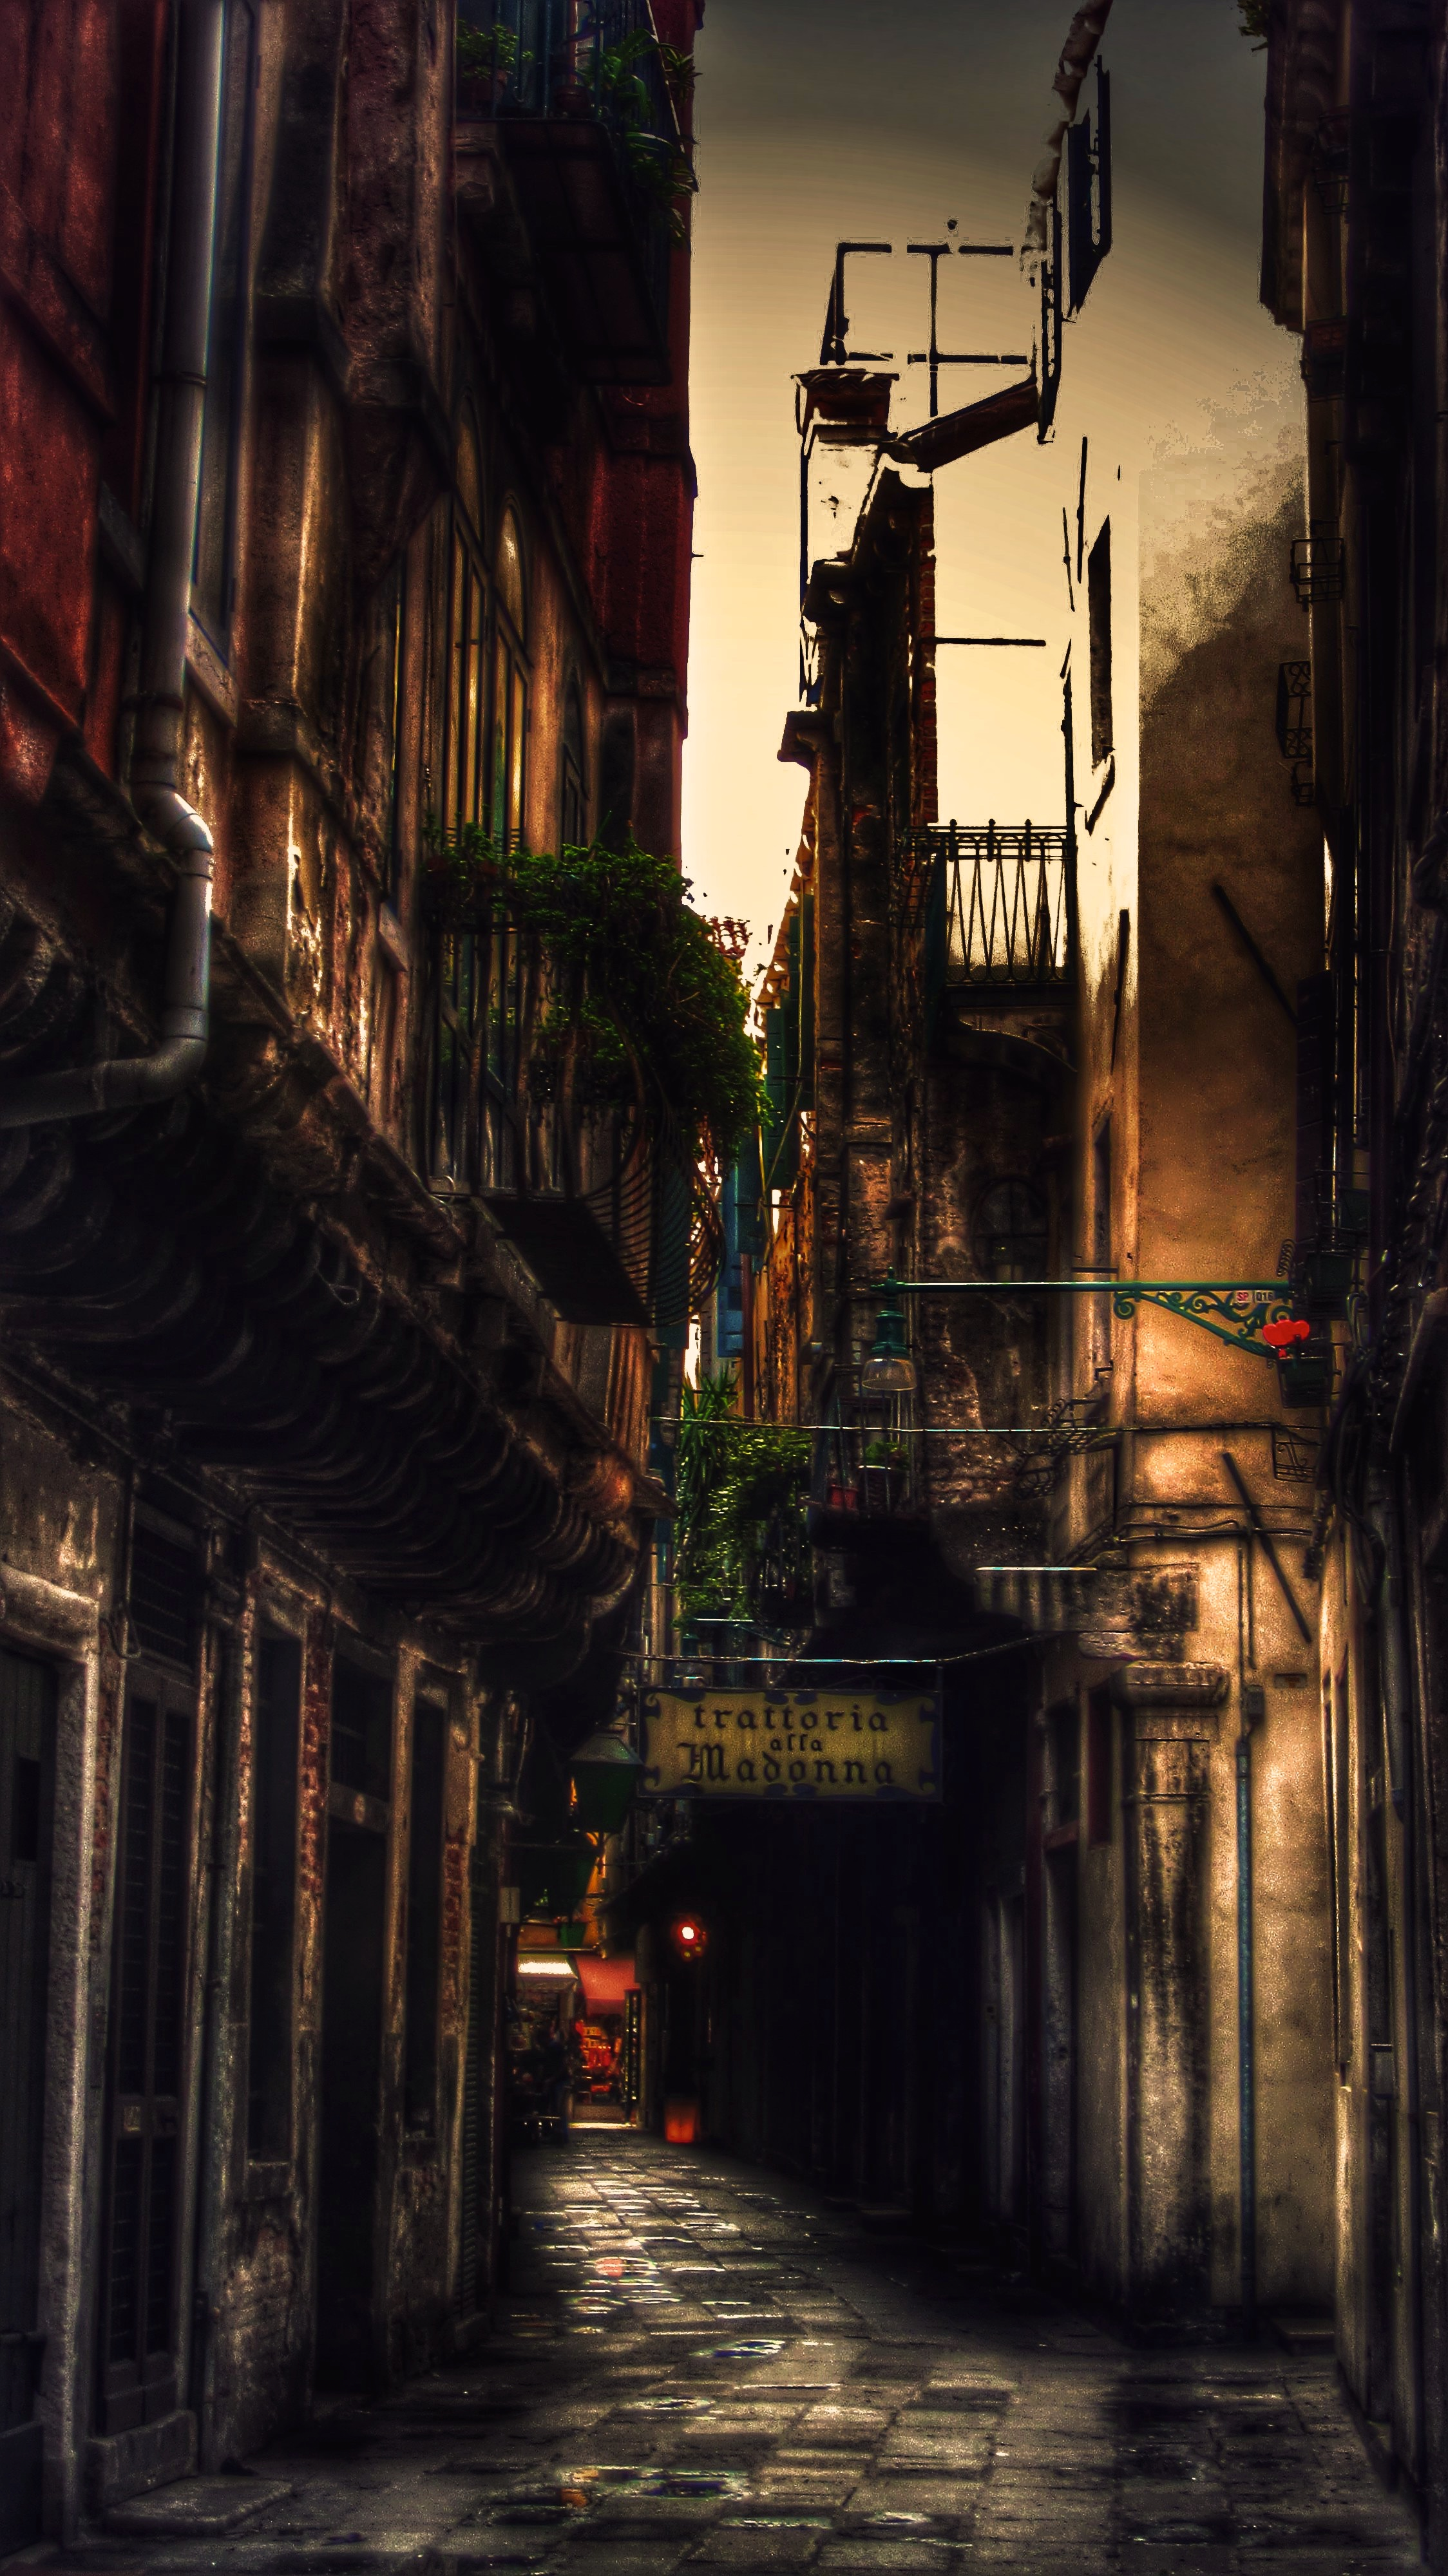 Painted Venice: La Trattoria – WPC – Phi (The Rule of Thirds…what a misnomer…)